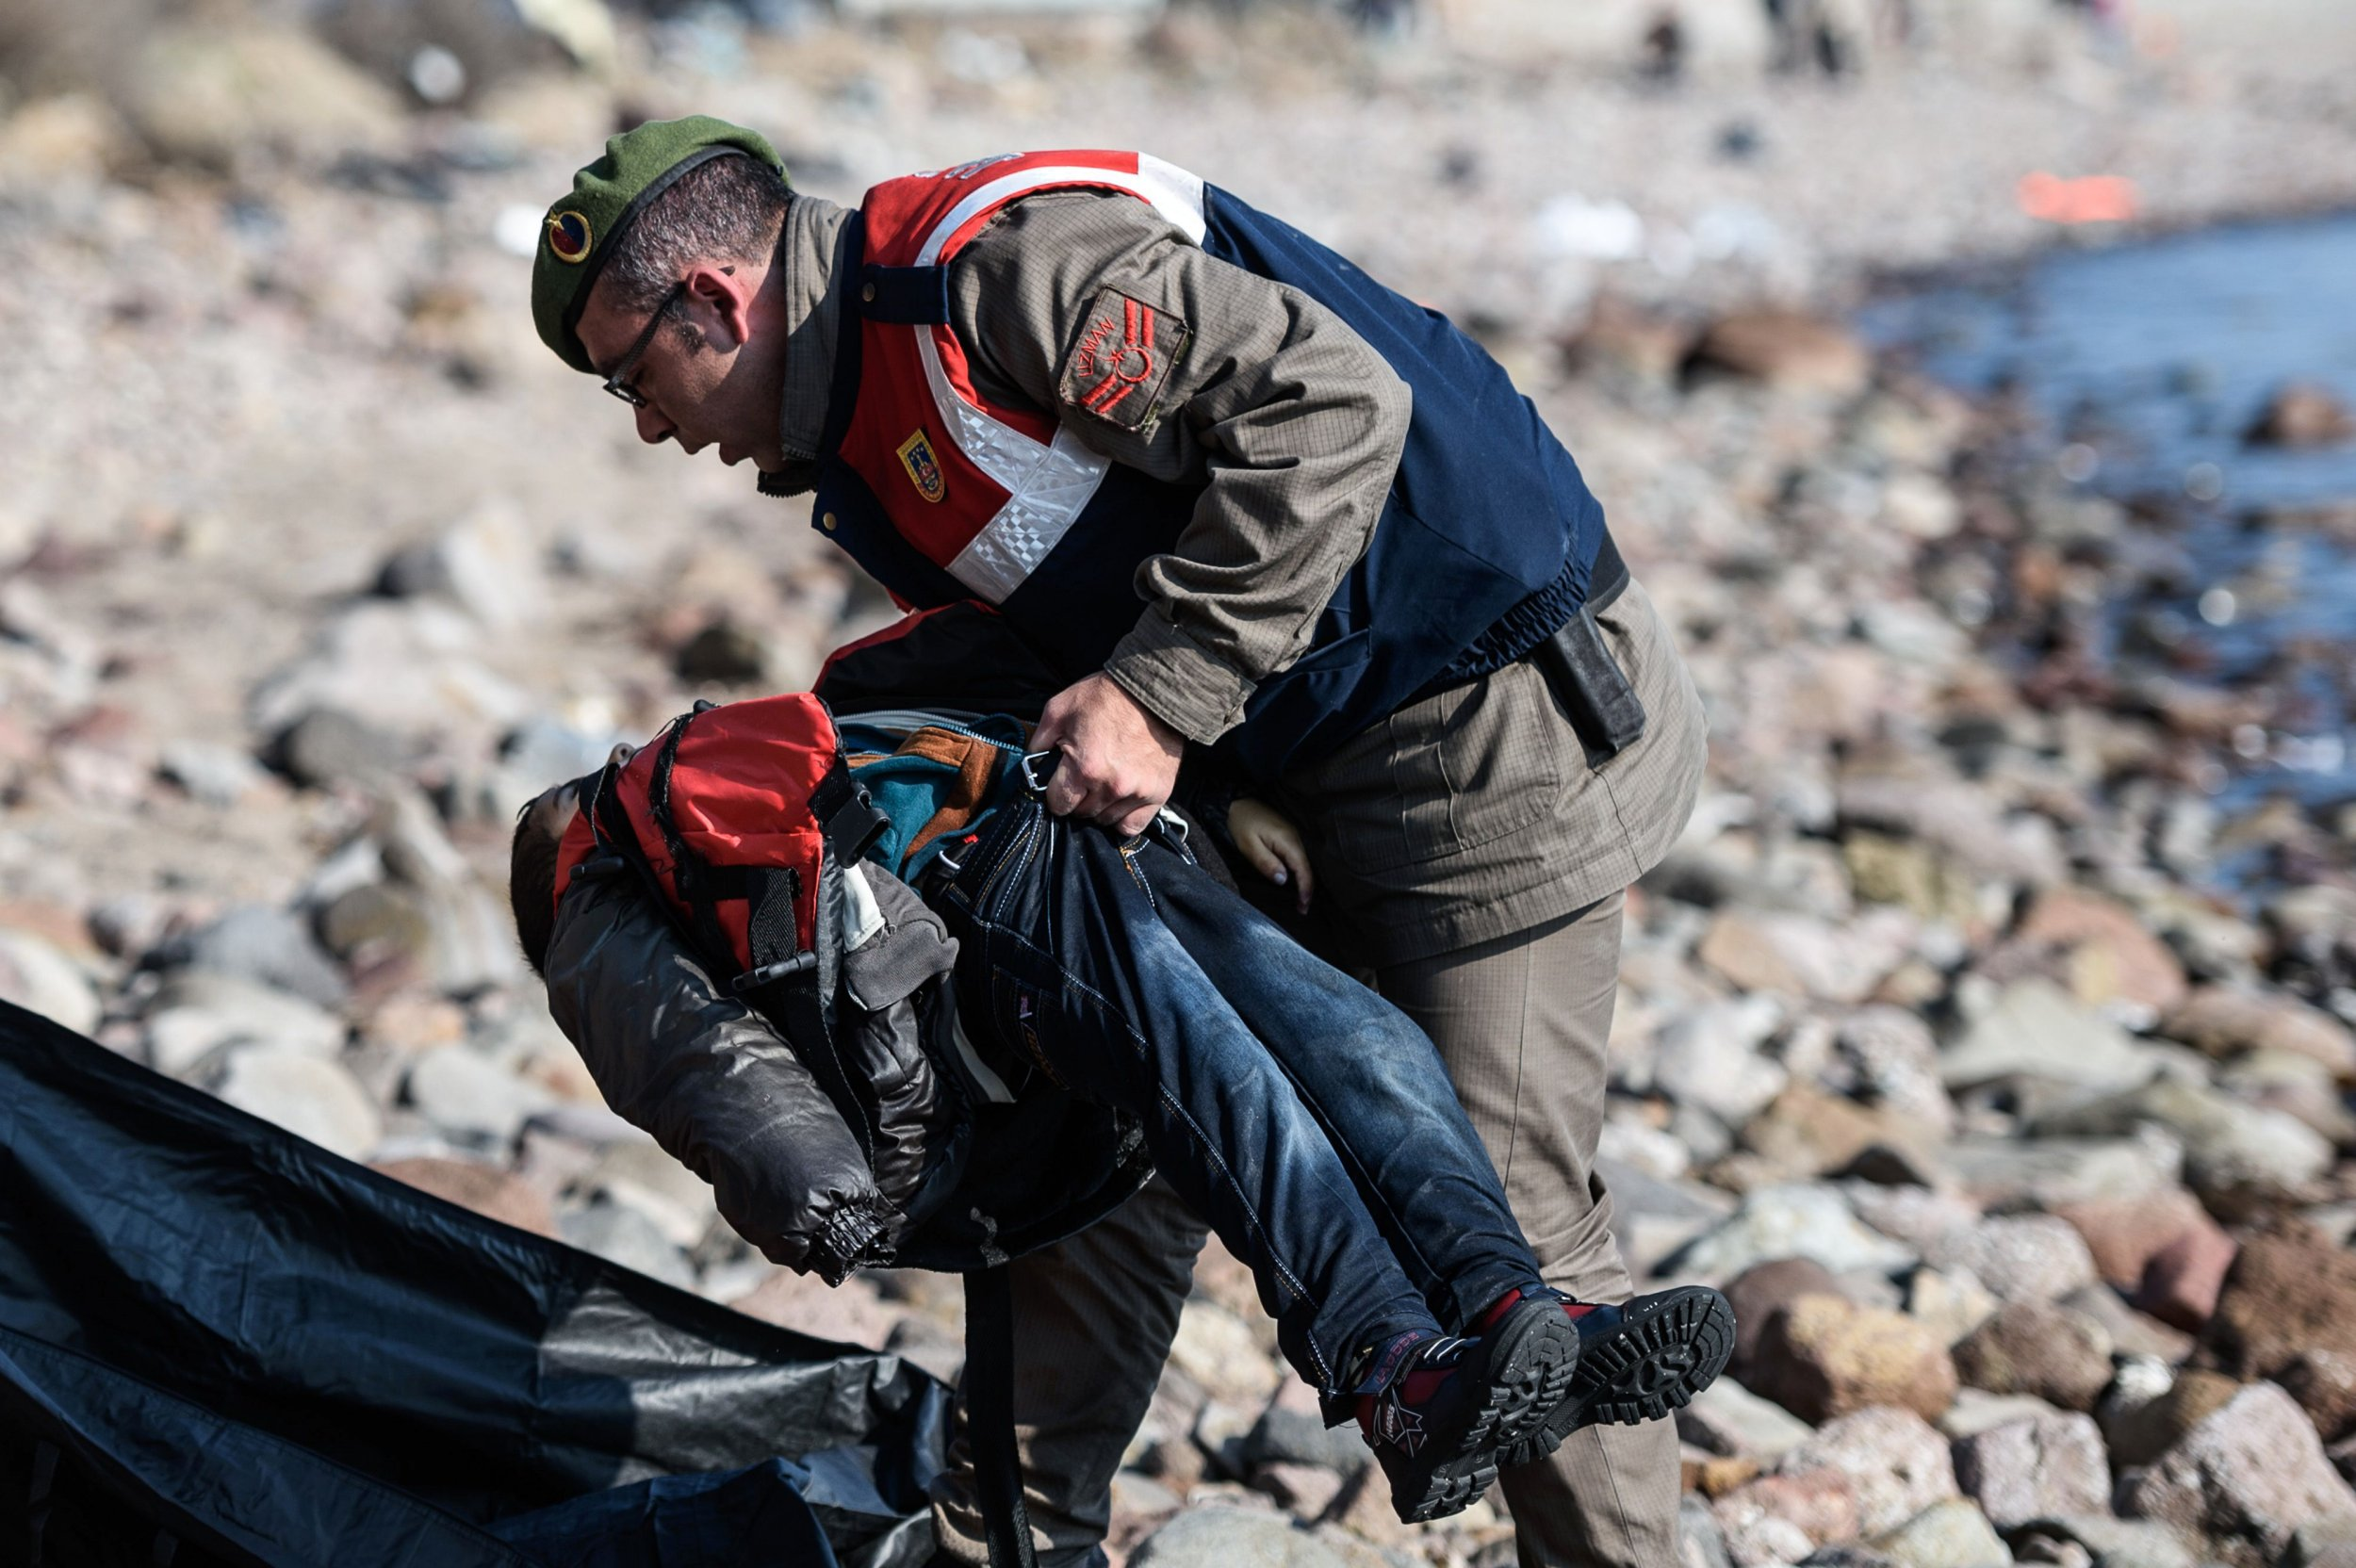 EDITORS NOTE: Graphic content / A Turkish gendarme carries the body of a child on a beach in Canakkale's Bademli district on January 30, 2016 after at least 33 migrants drowned when their boat sank in the Aegean Sea while trying to cross from Turkey to Greece, Turkey's state-run Anatolia news agency reported. The migrants, who included those from Myanmar, Afghanistan and Syria, set sail from the Canakkale province to reach the nearby Greek island of Lesbos, Anatolia said. / AFP / OZAN KOSEOZAN KOSE/AFP/Getty Images